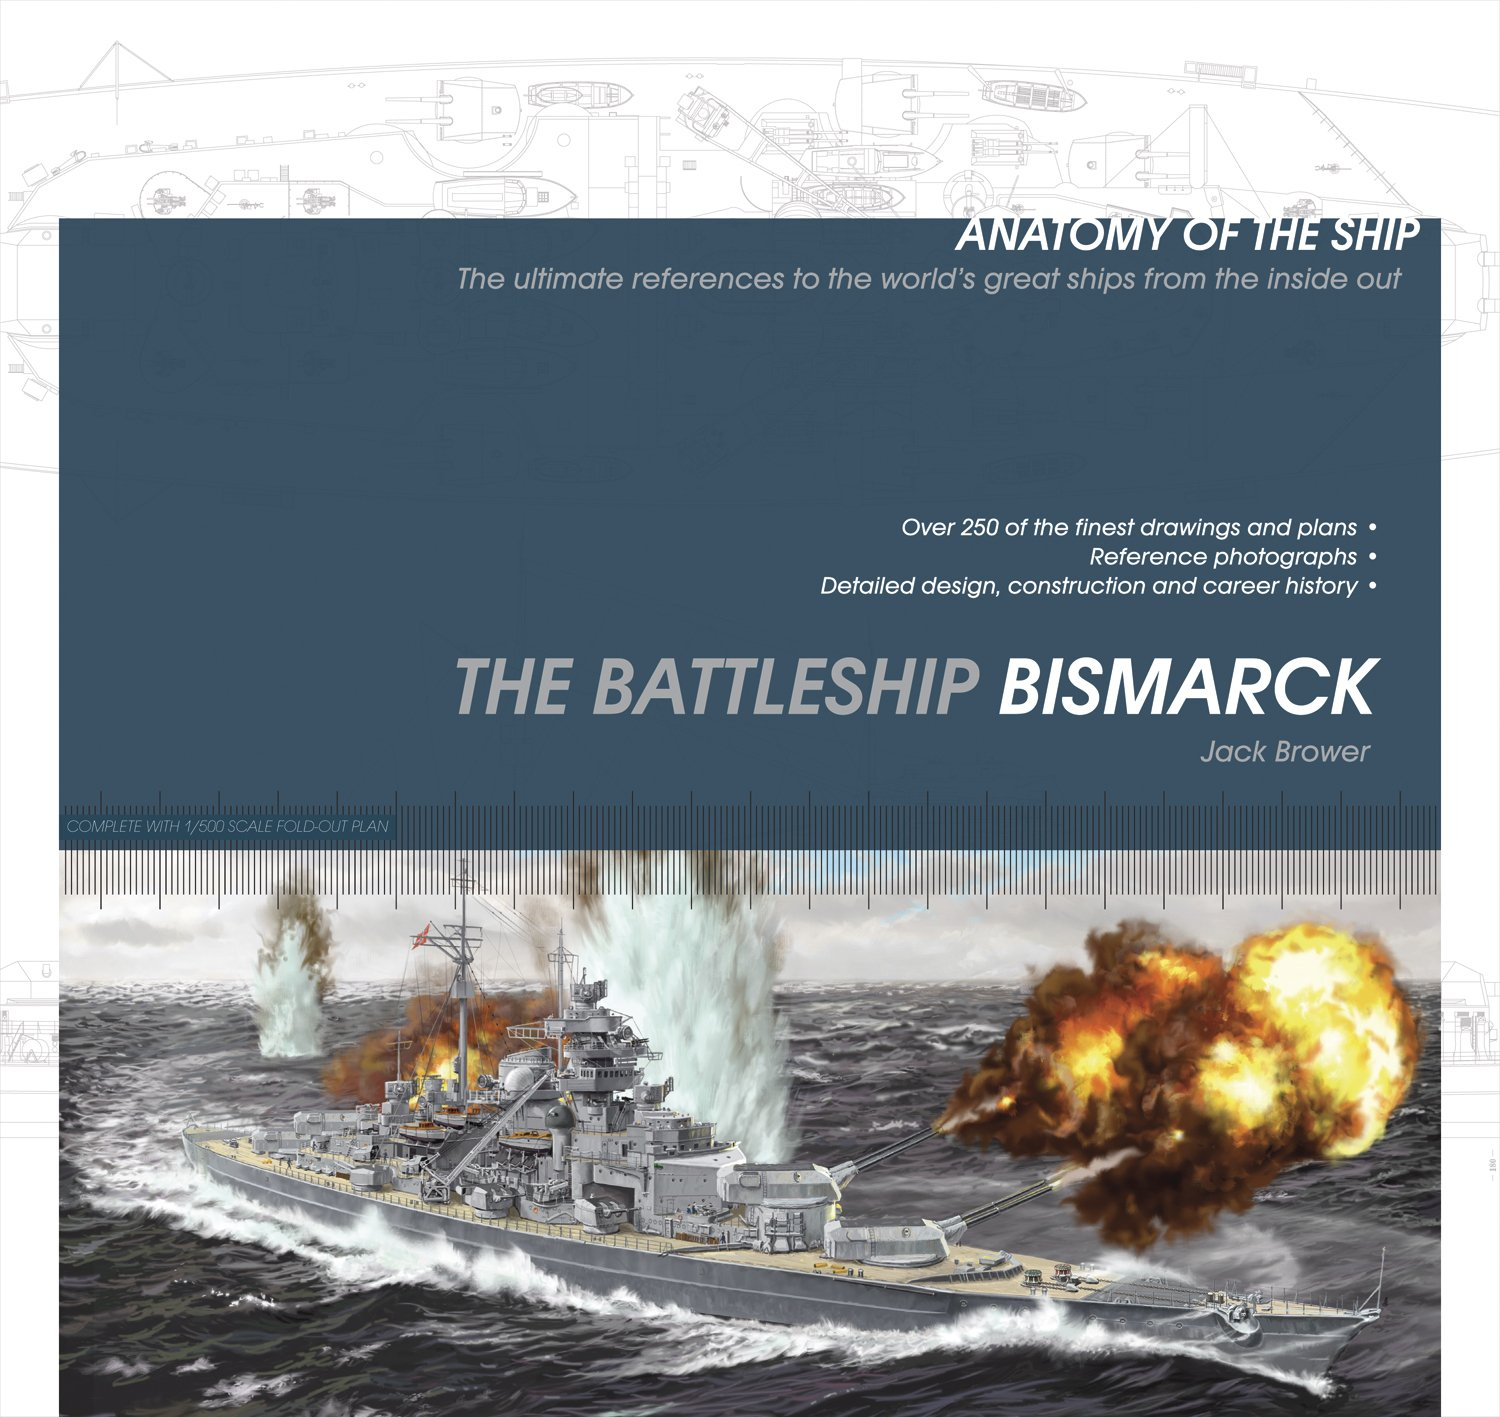 The Battleship Bismarck Anatomy Of The Ship Jack Brower